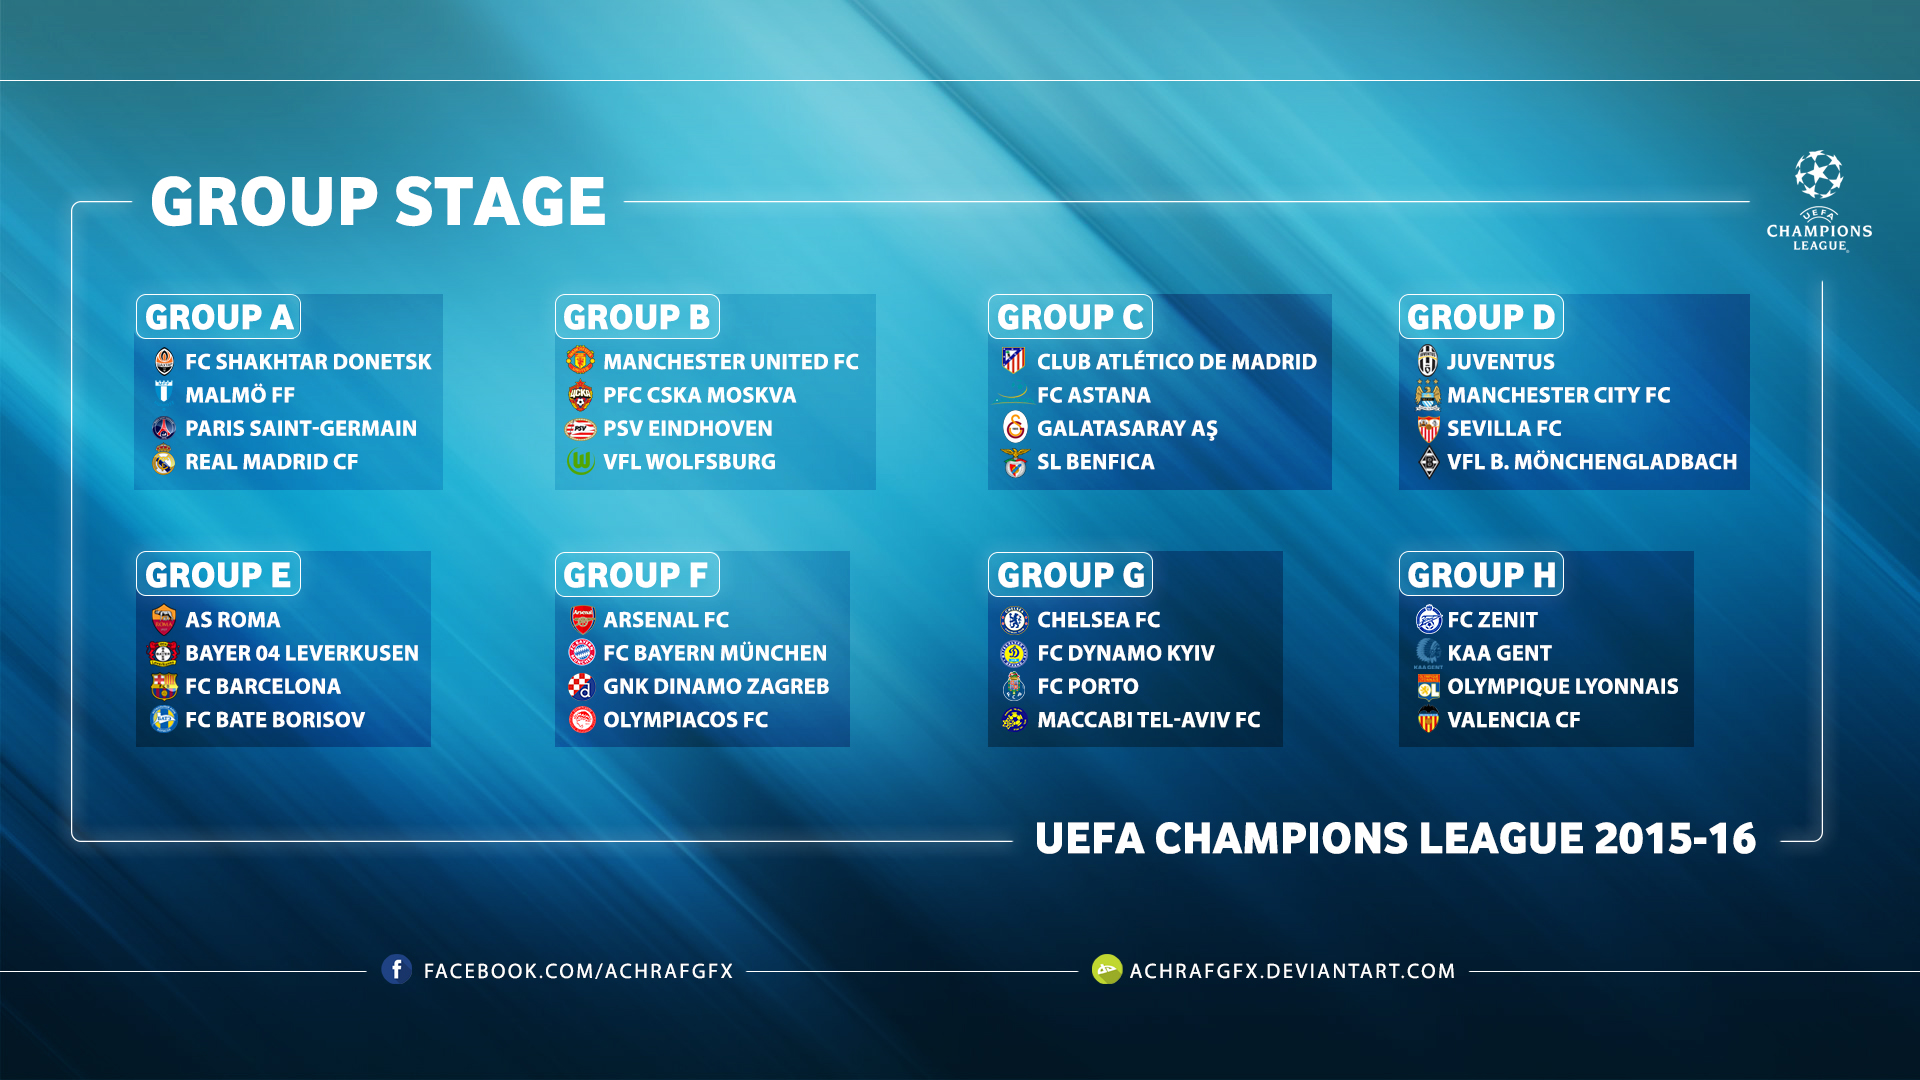 UEFA CHAMPIONS LEAGUE GROUP STAGE 2015 16 By Achrafgfx